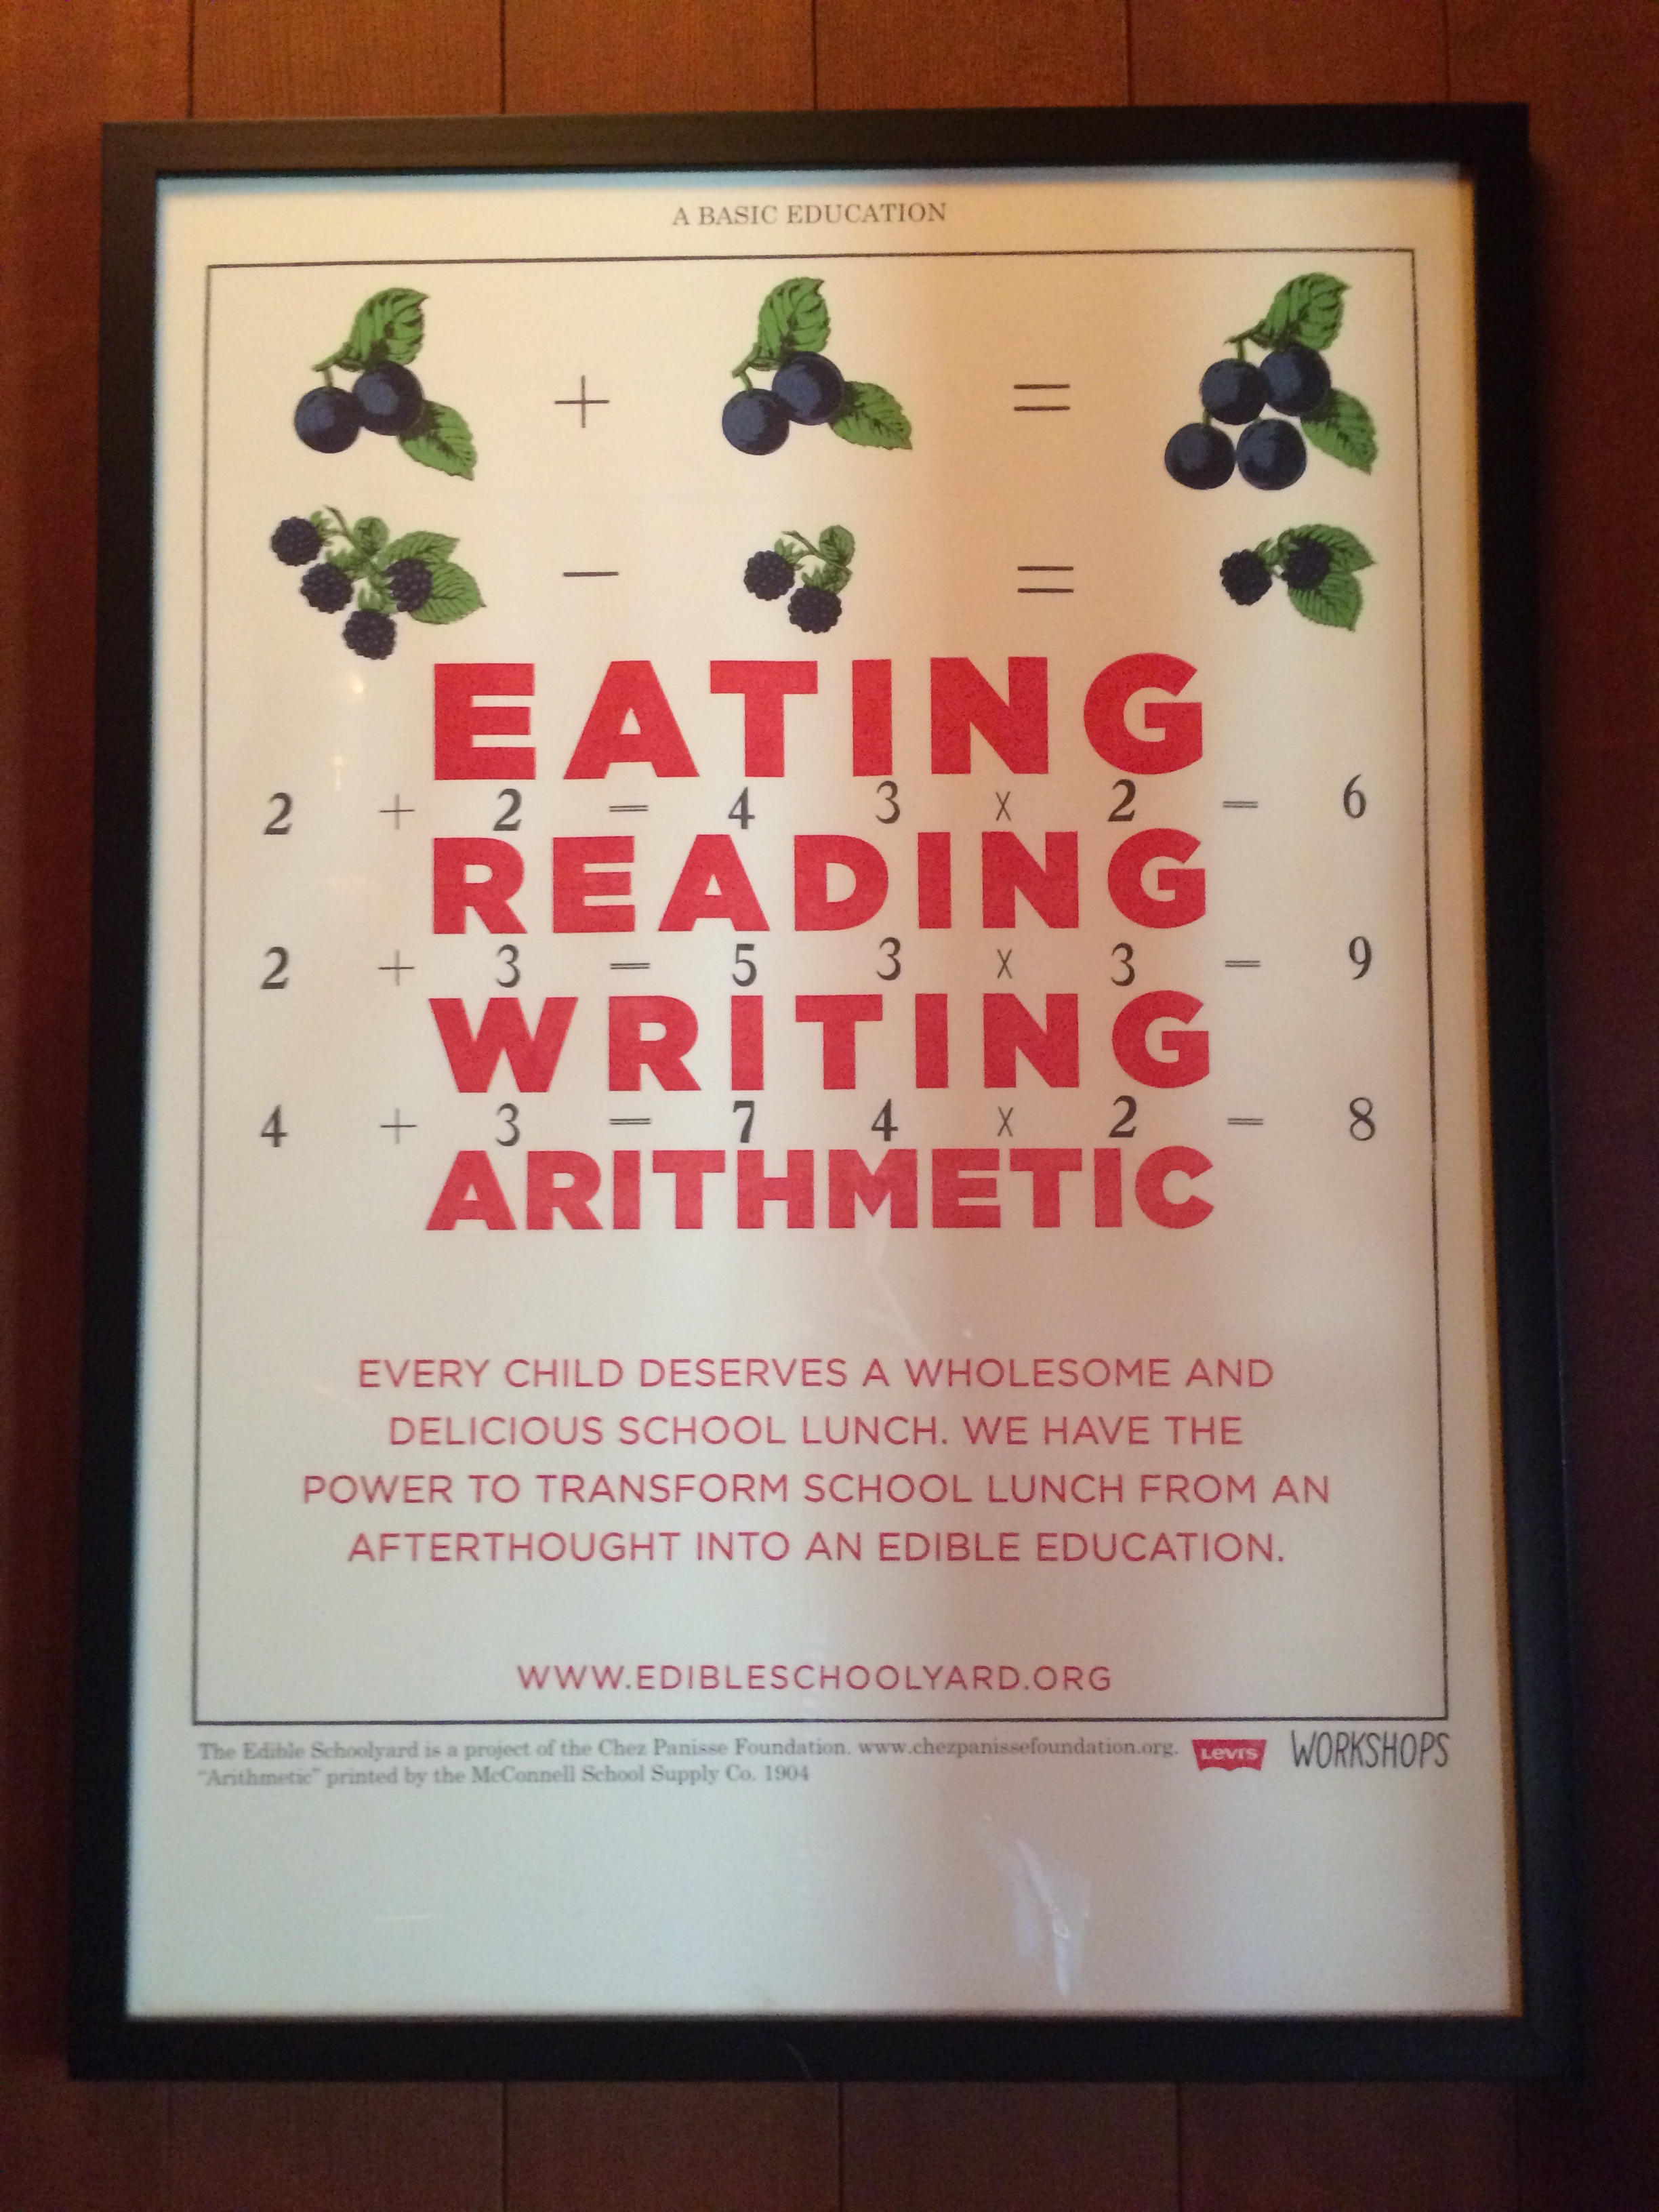 a poster in the entry featuring alice waters' foundation, edible schoolyard.